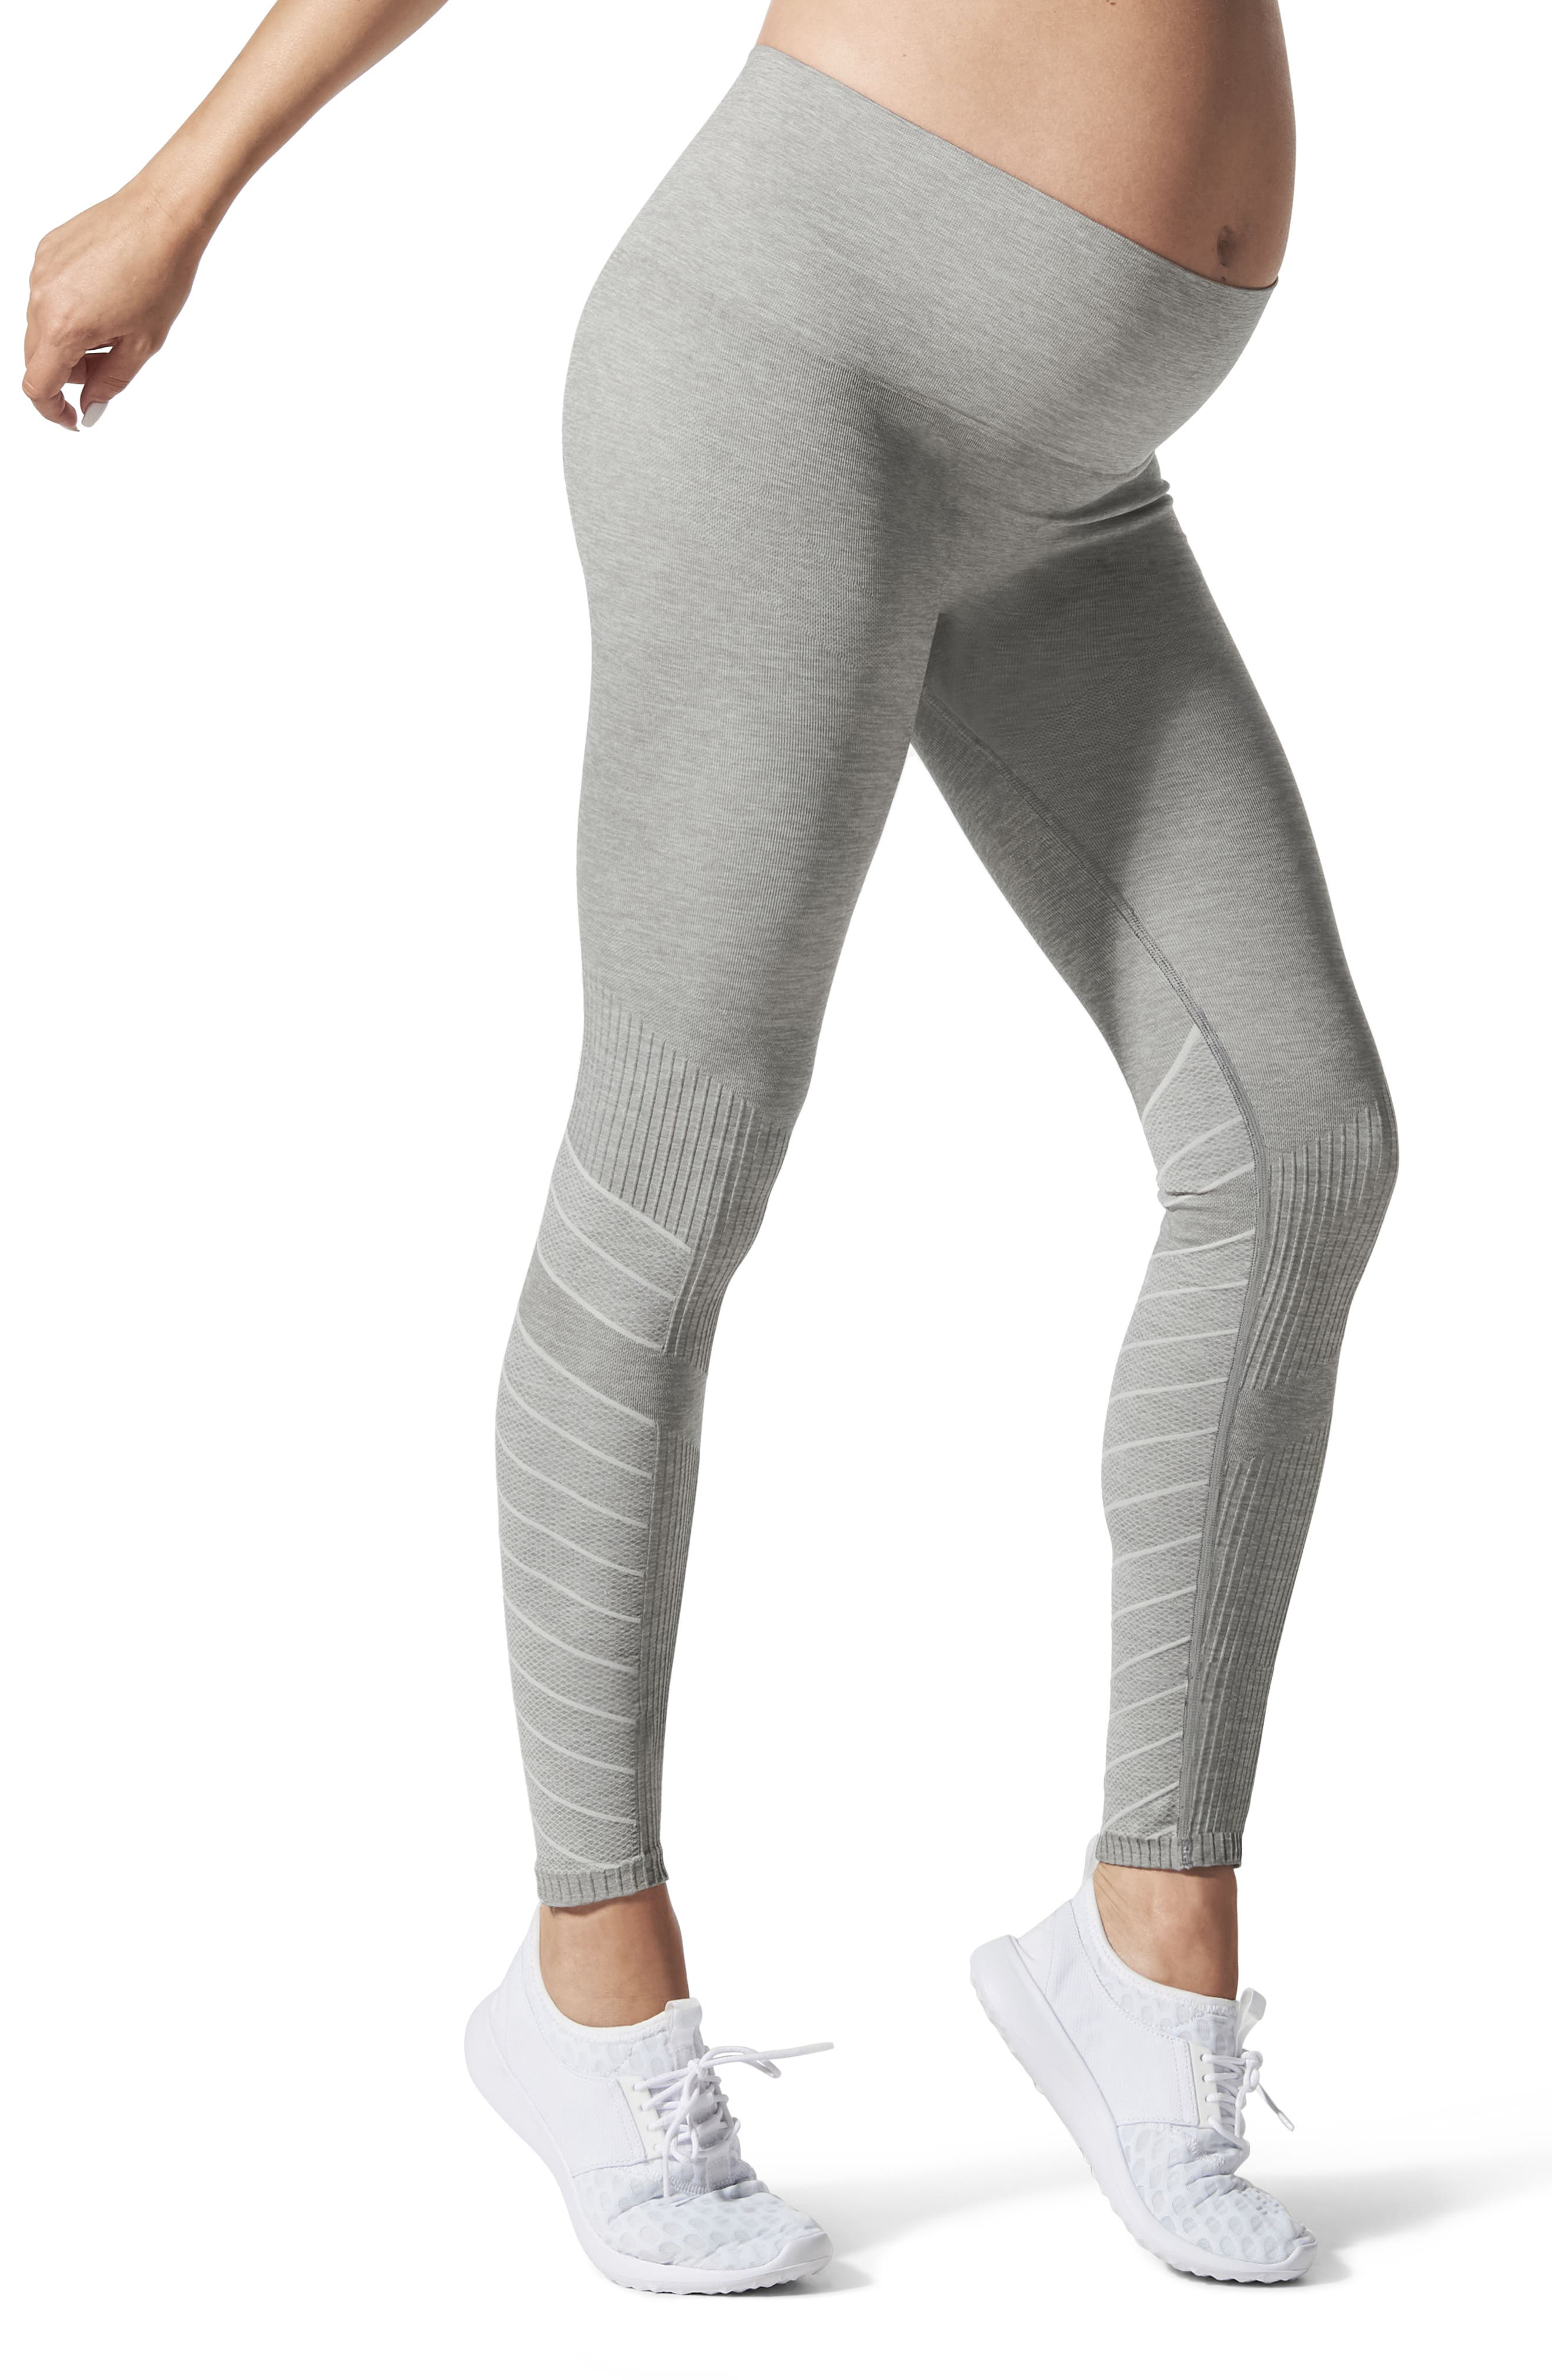 Blanqi Sportsupport Hipster Contour Support Maternity/postpartum Leggings, Grey